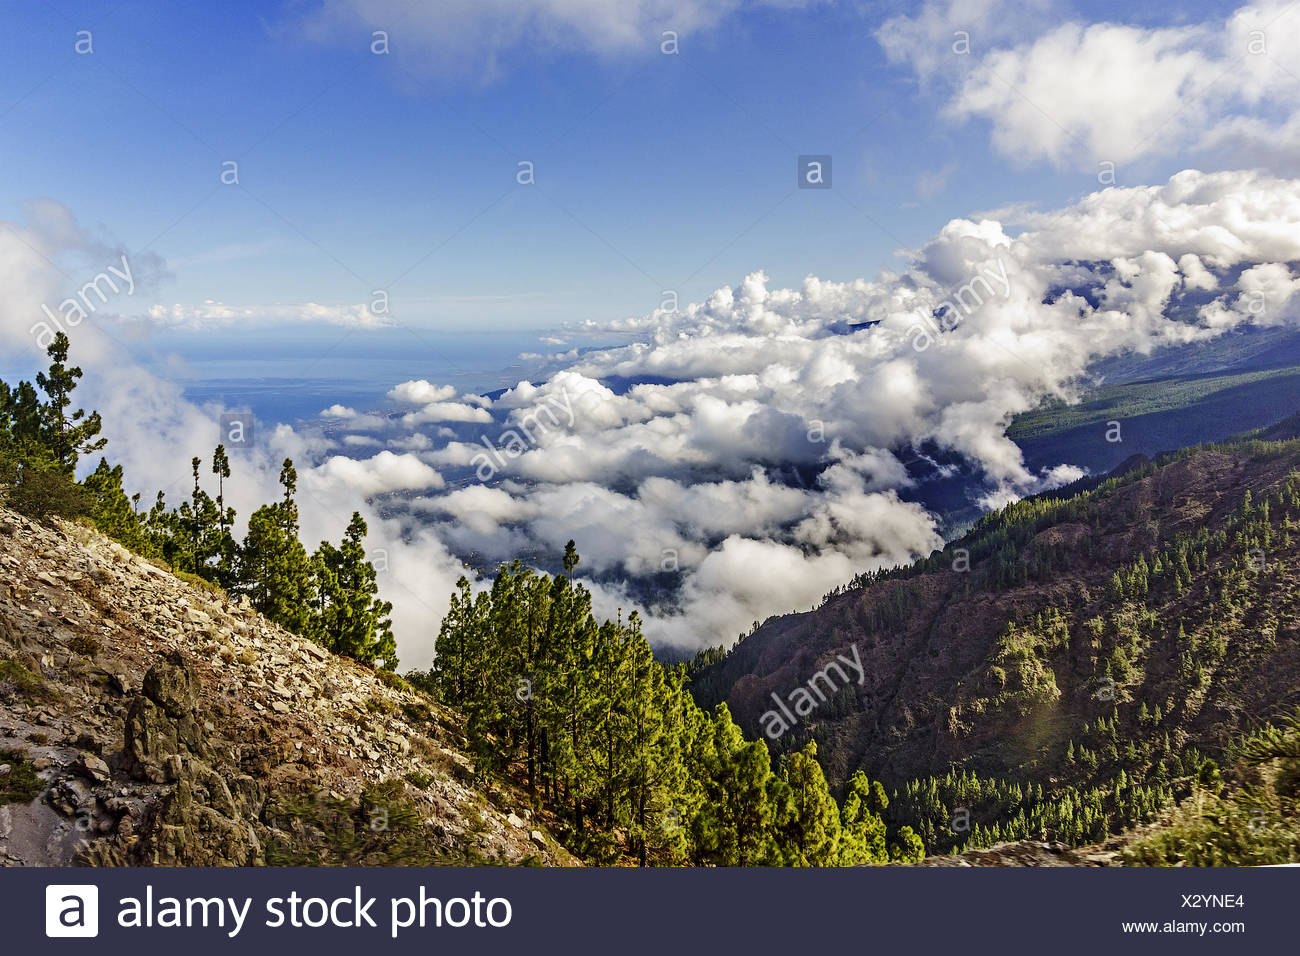 View From The Mountain Top Tenerife Canary Islands - Stock Image